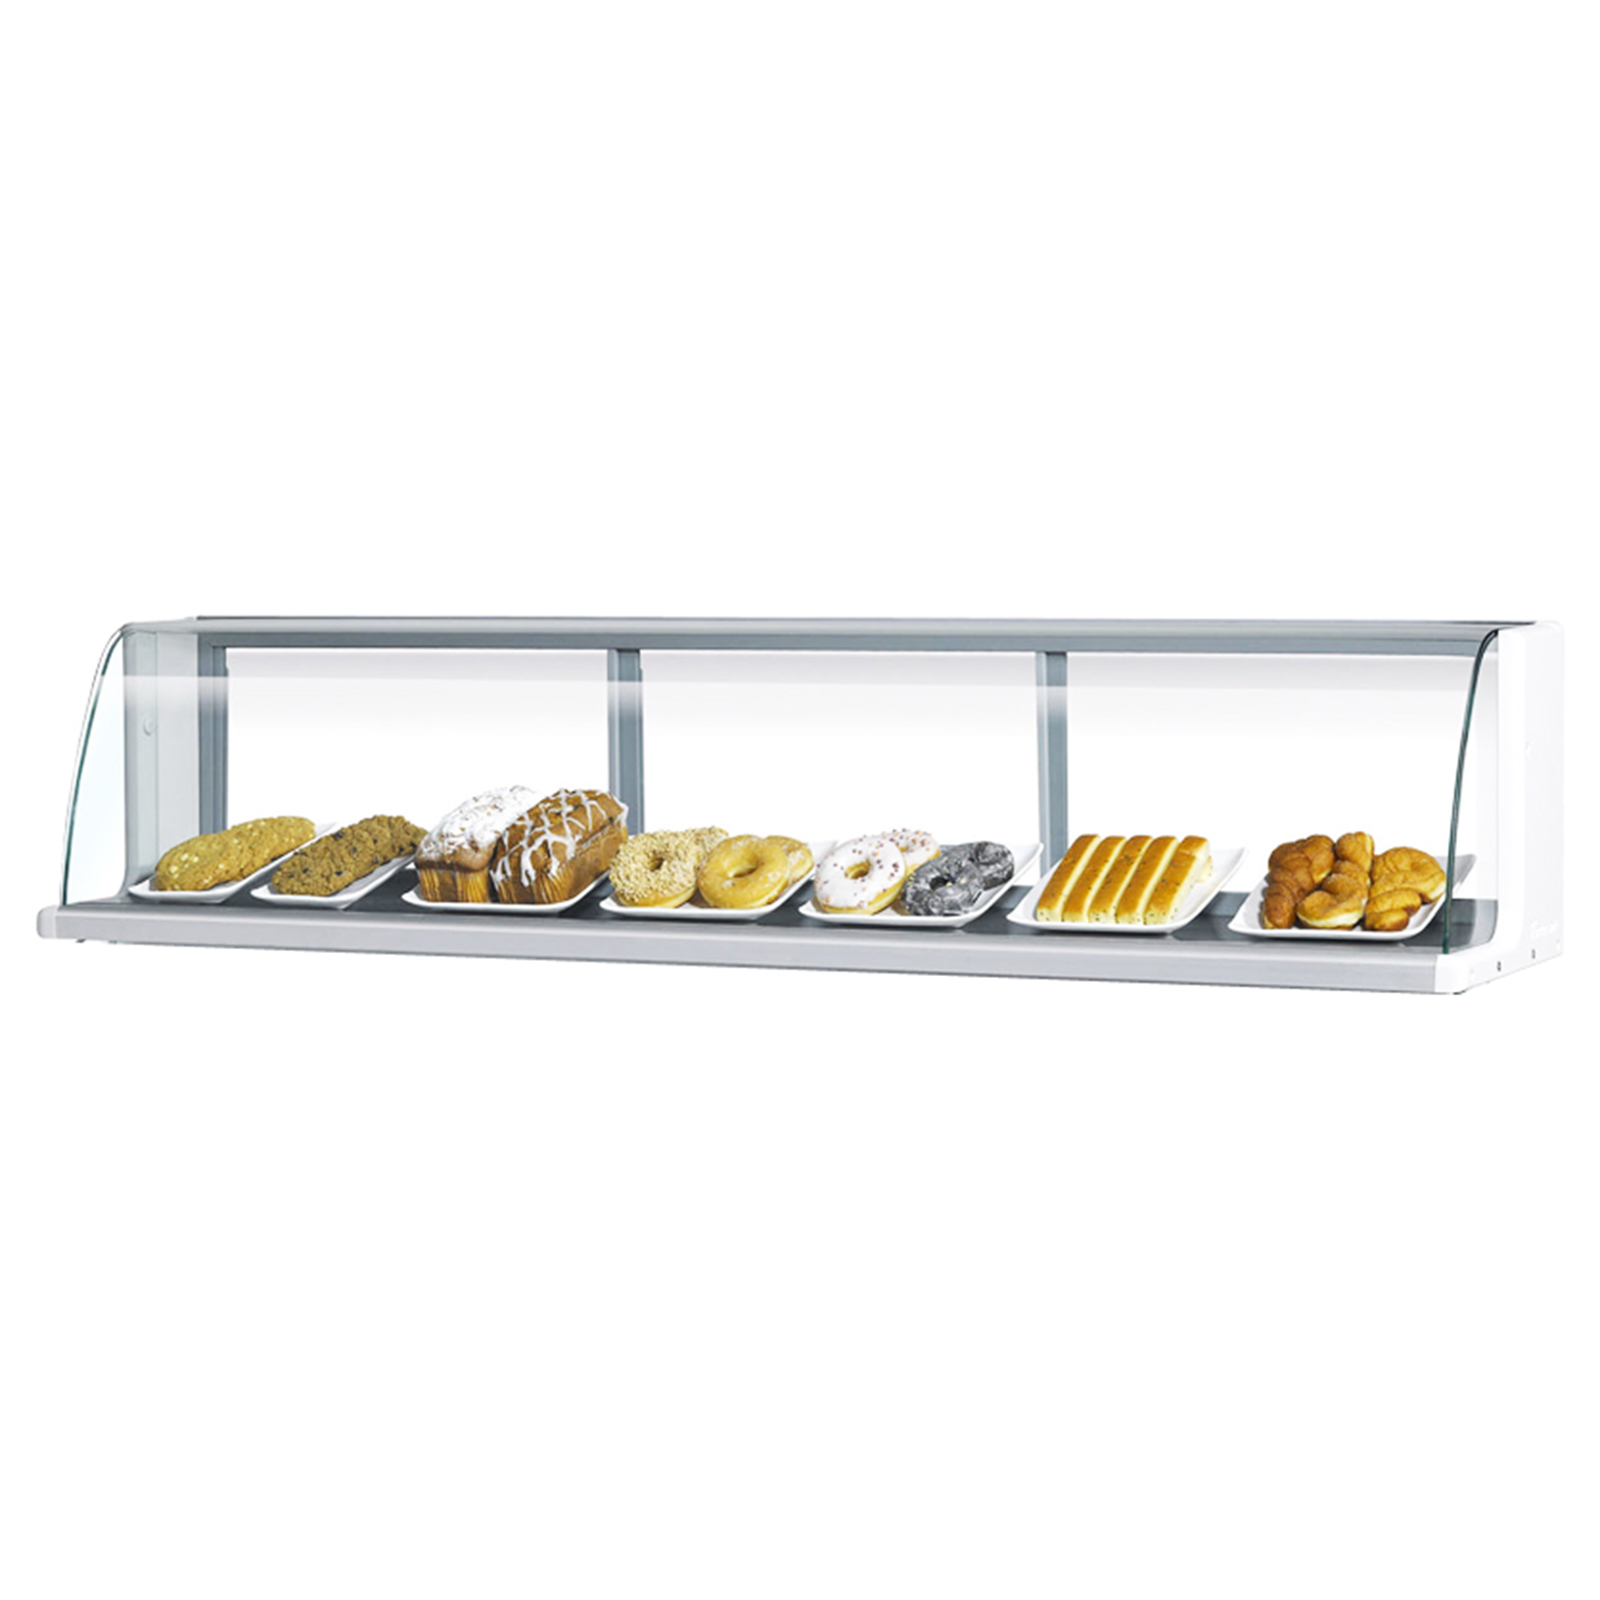 Turbo Air TOMD-30LW display case, non-refrigerated countertop